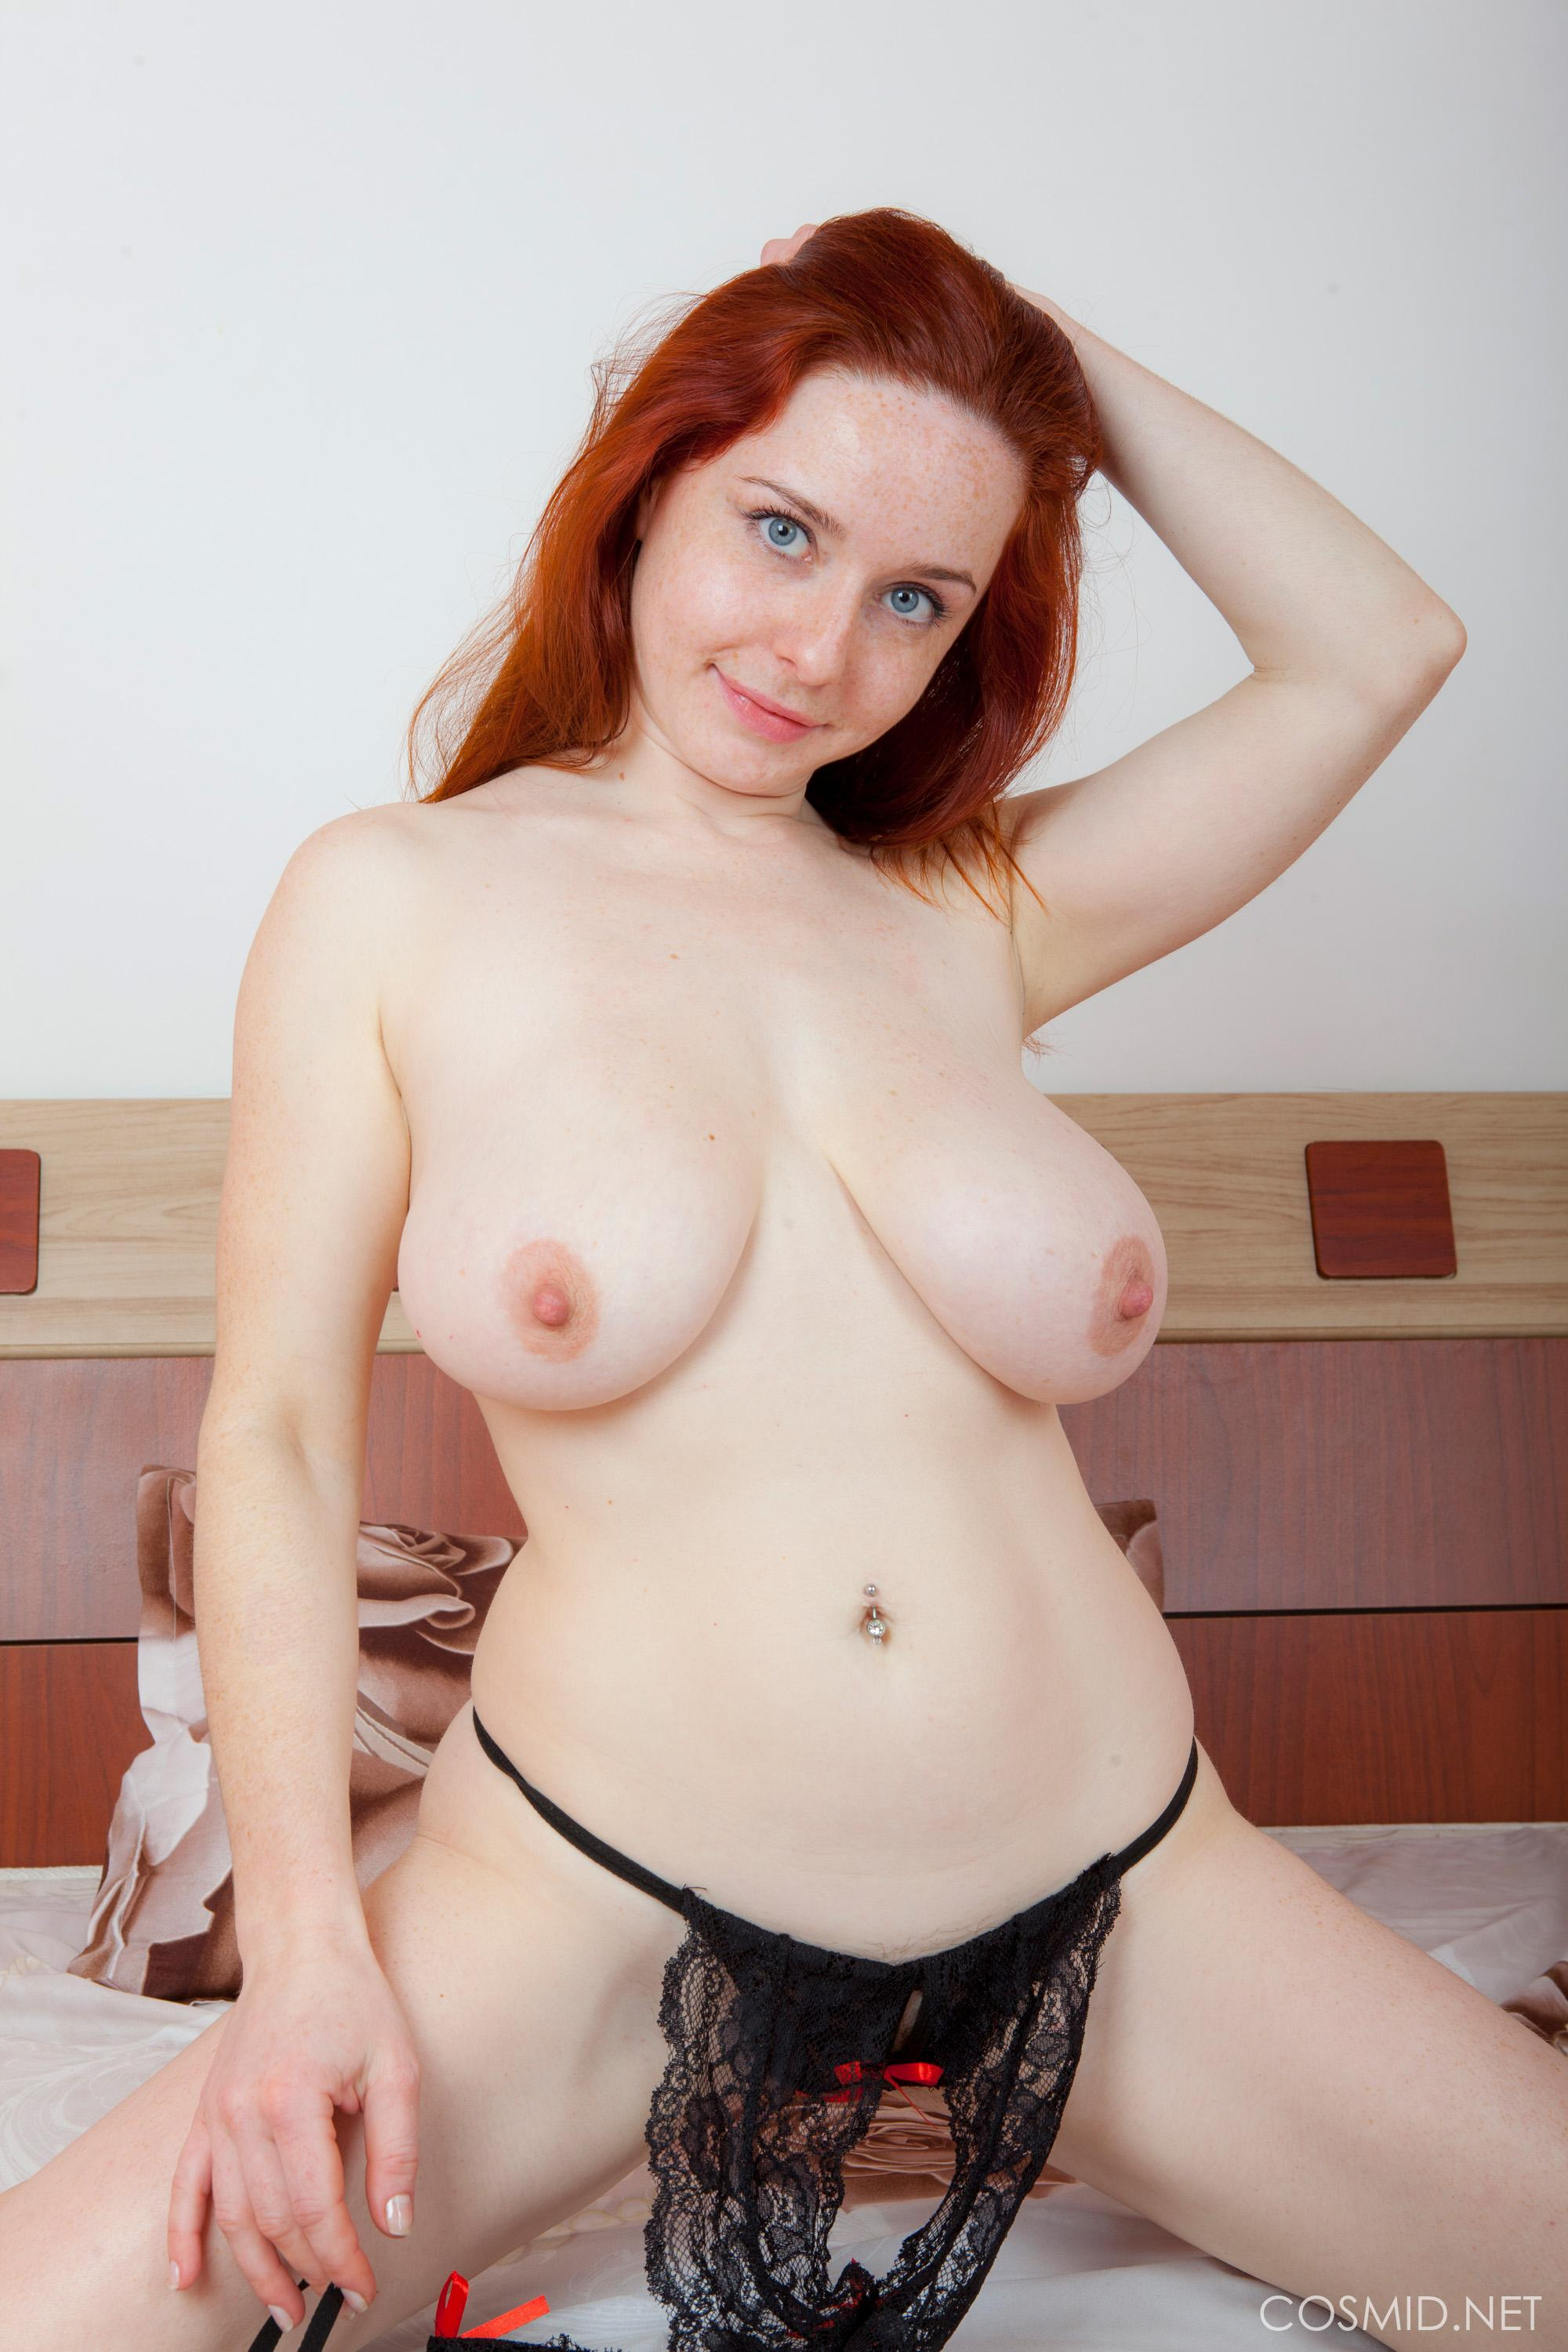 Mcanelly recommends Dating services las vegas nv